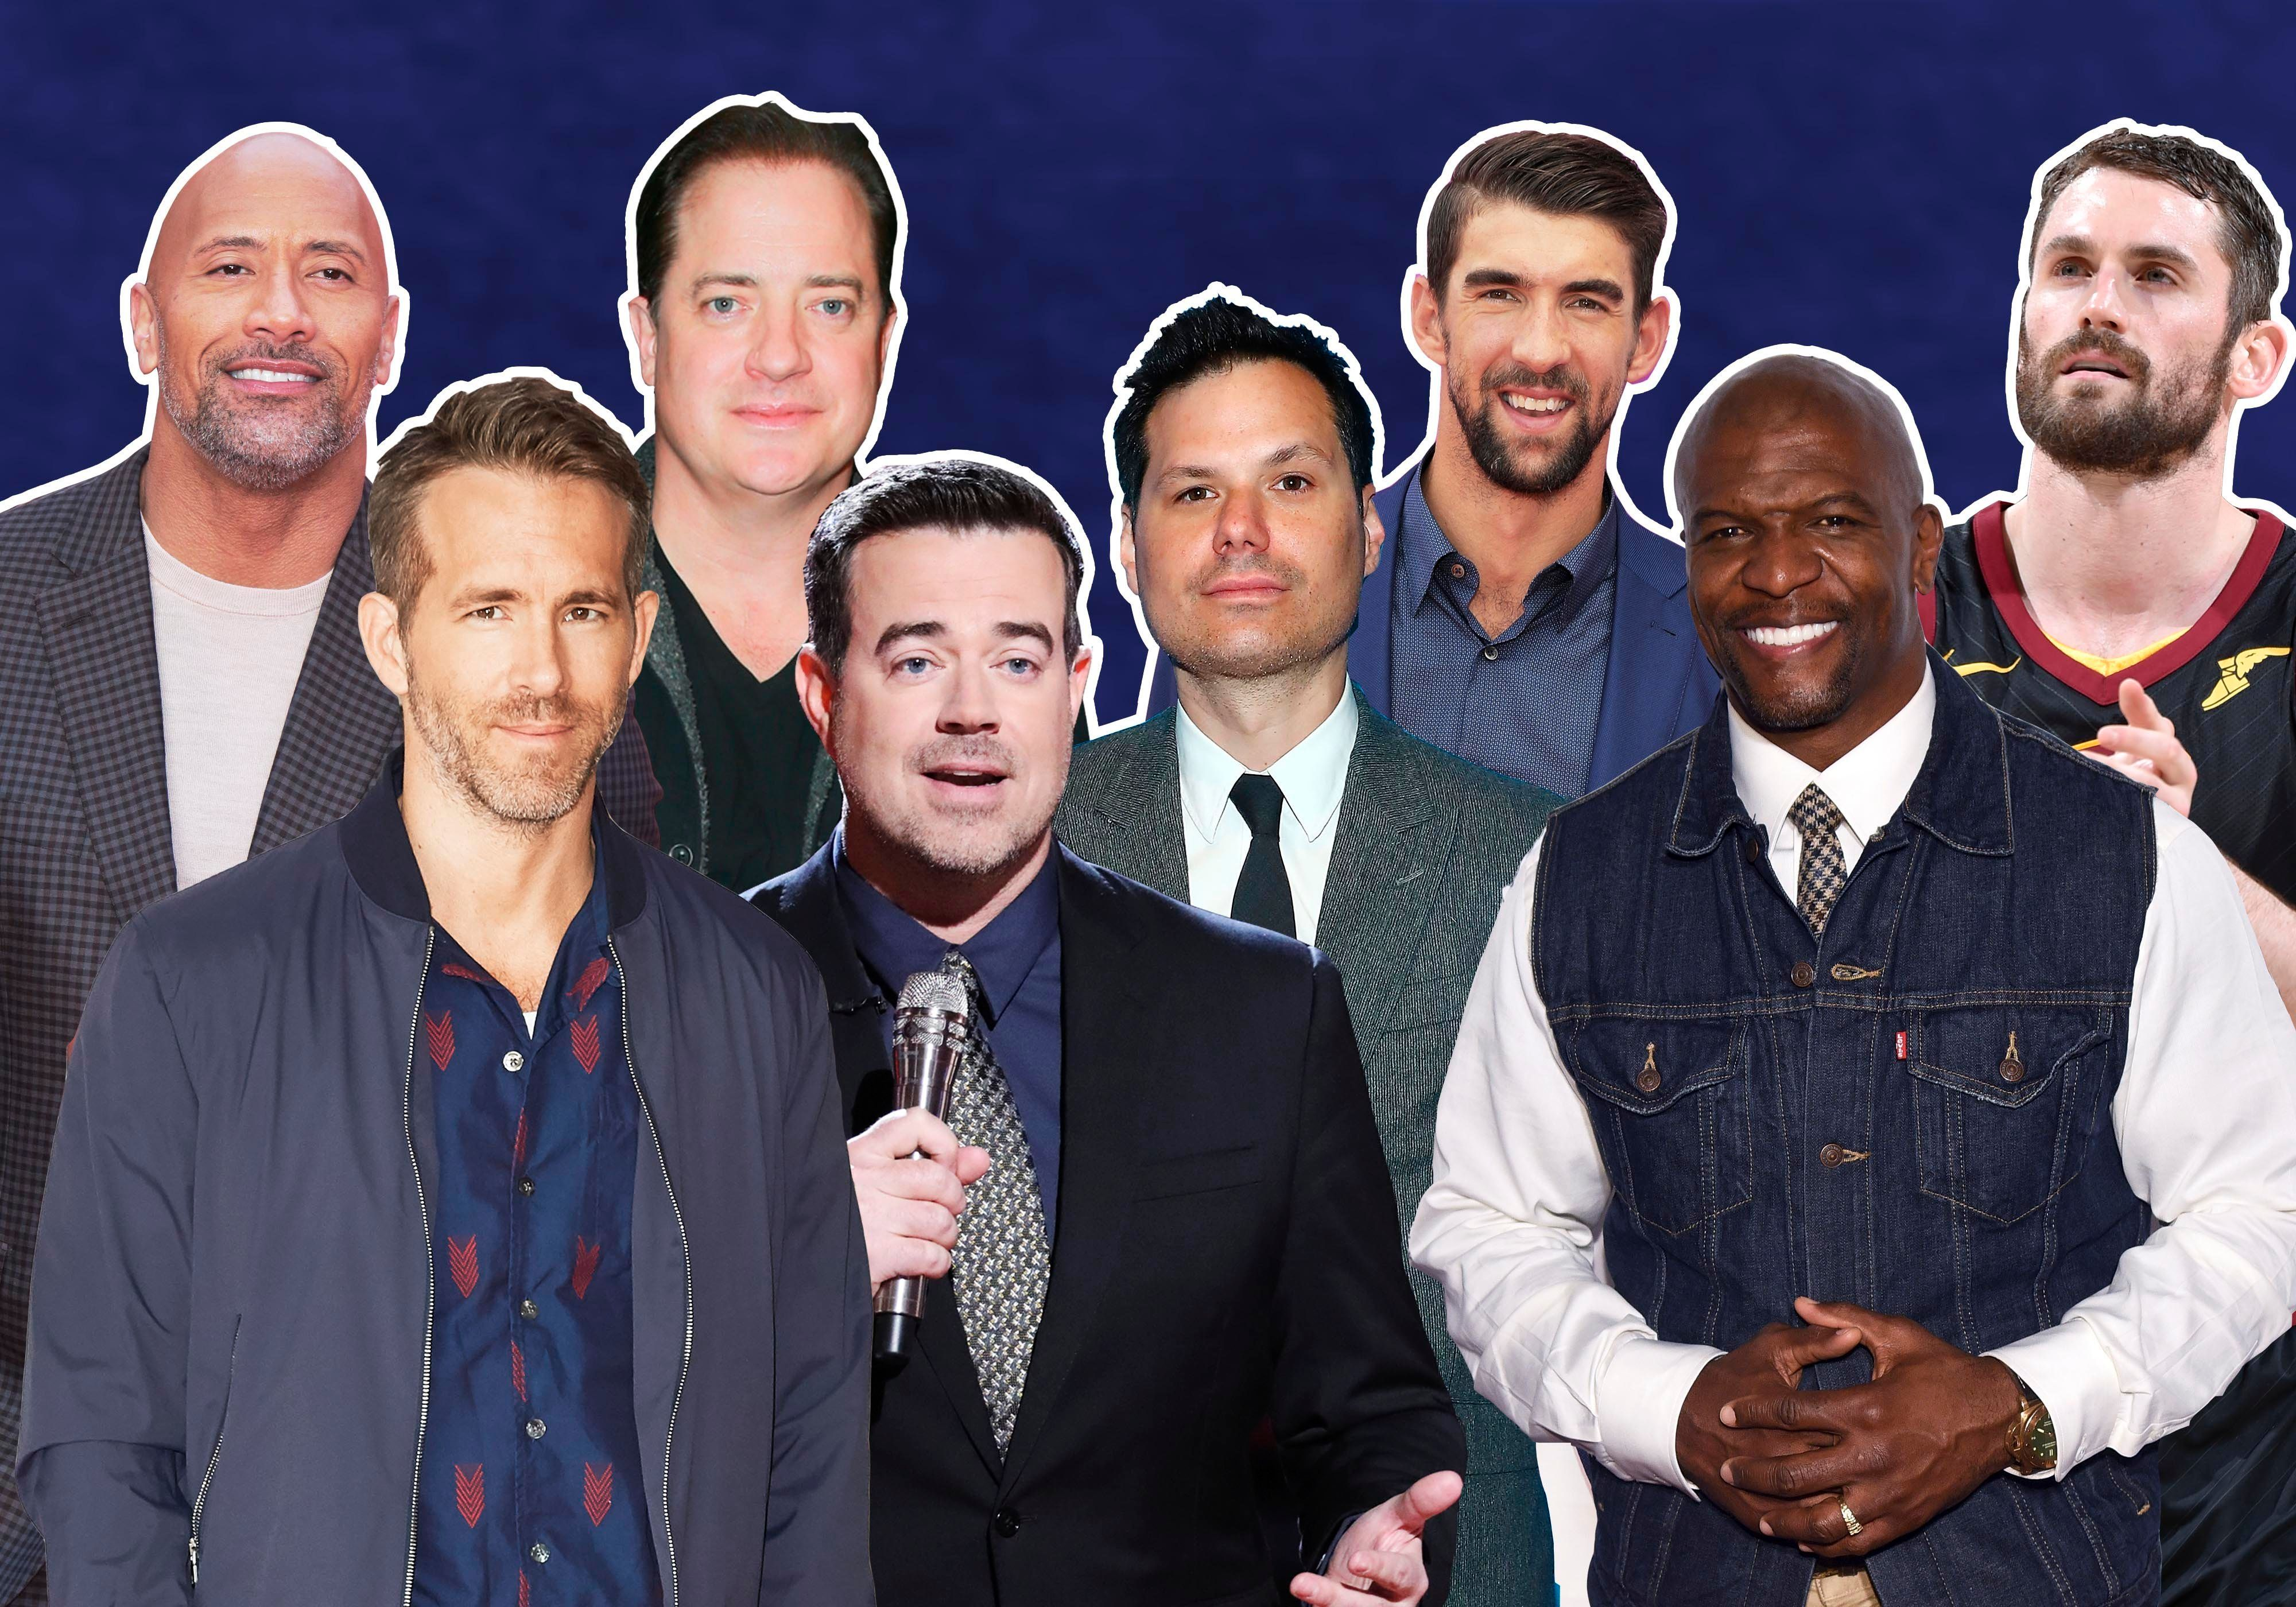 Several high-profile men have opened up about their mental healthin recent months.